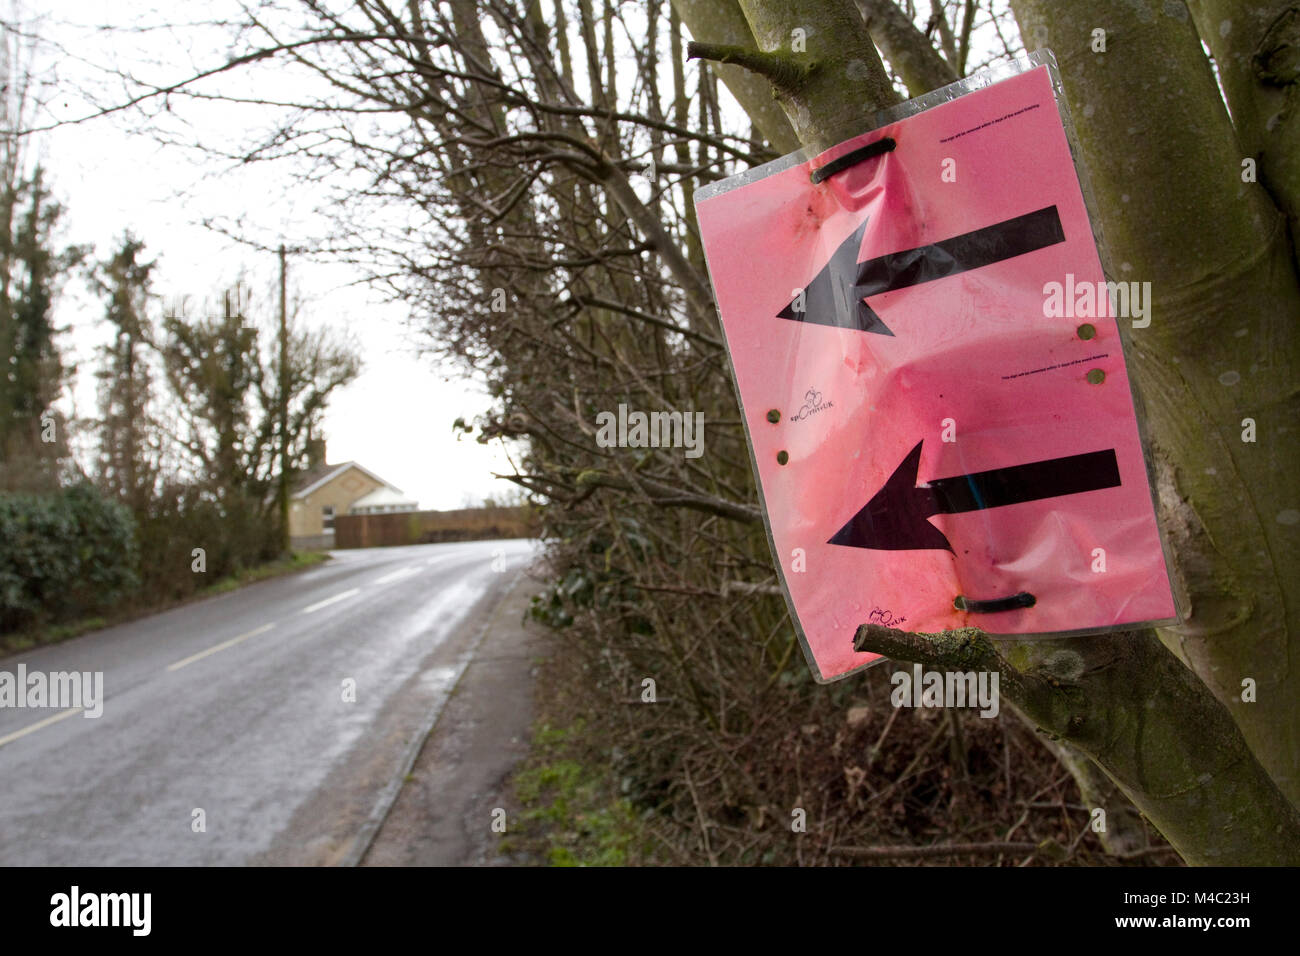 Black arrows on red/pink background for a sporting event - Stock Image